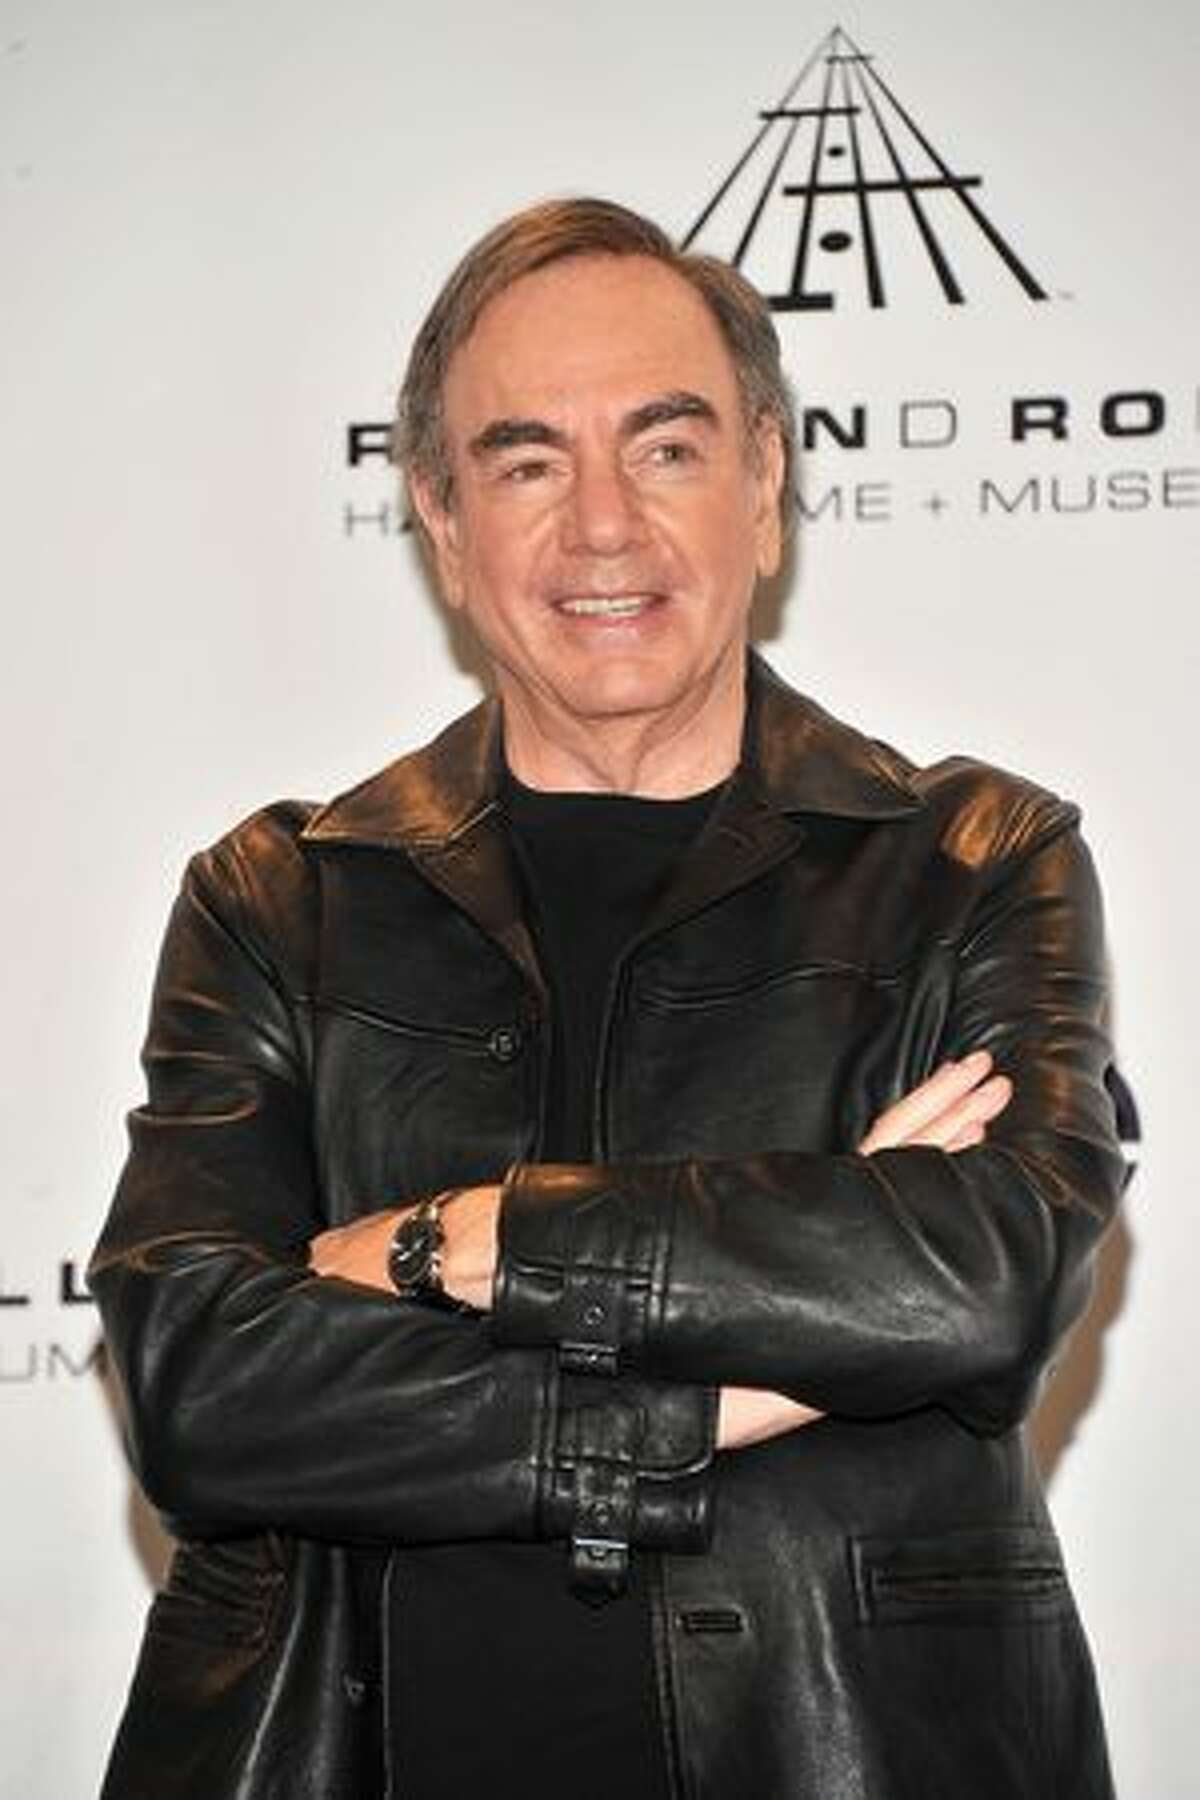 Inductee Neil Diamond poses in the press room.